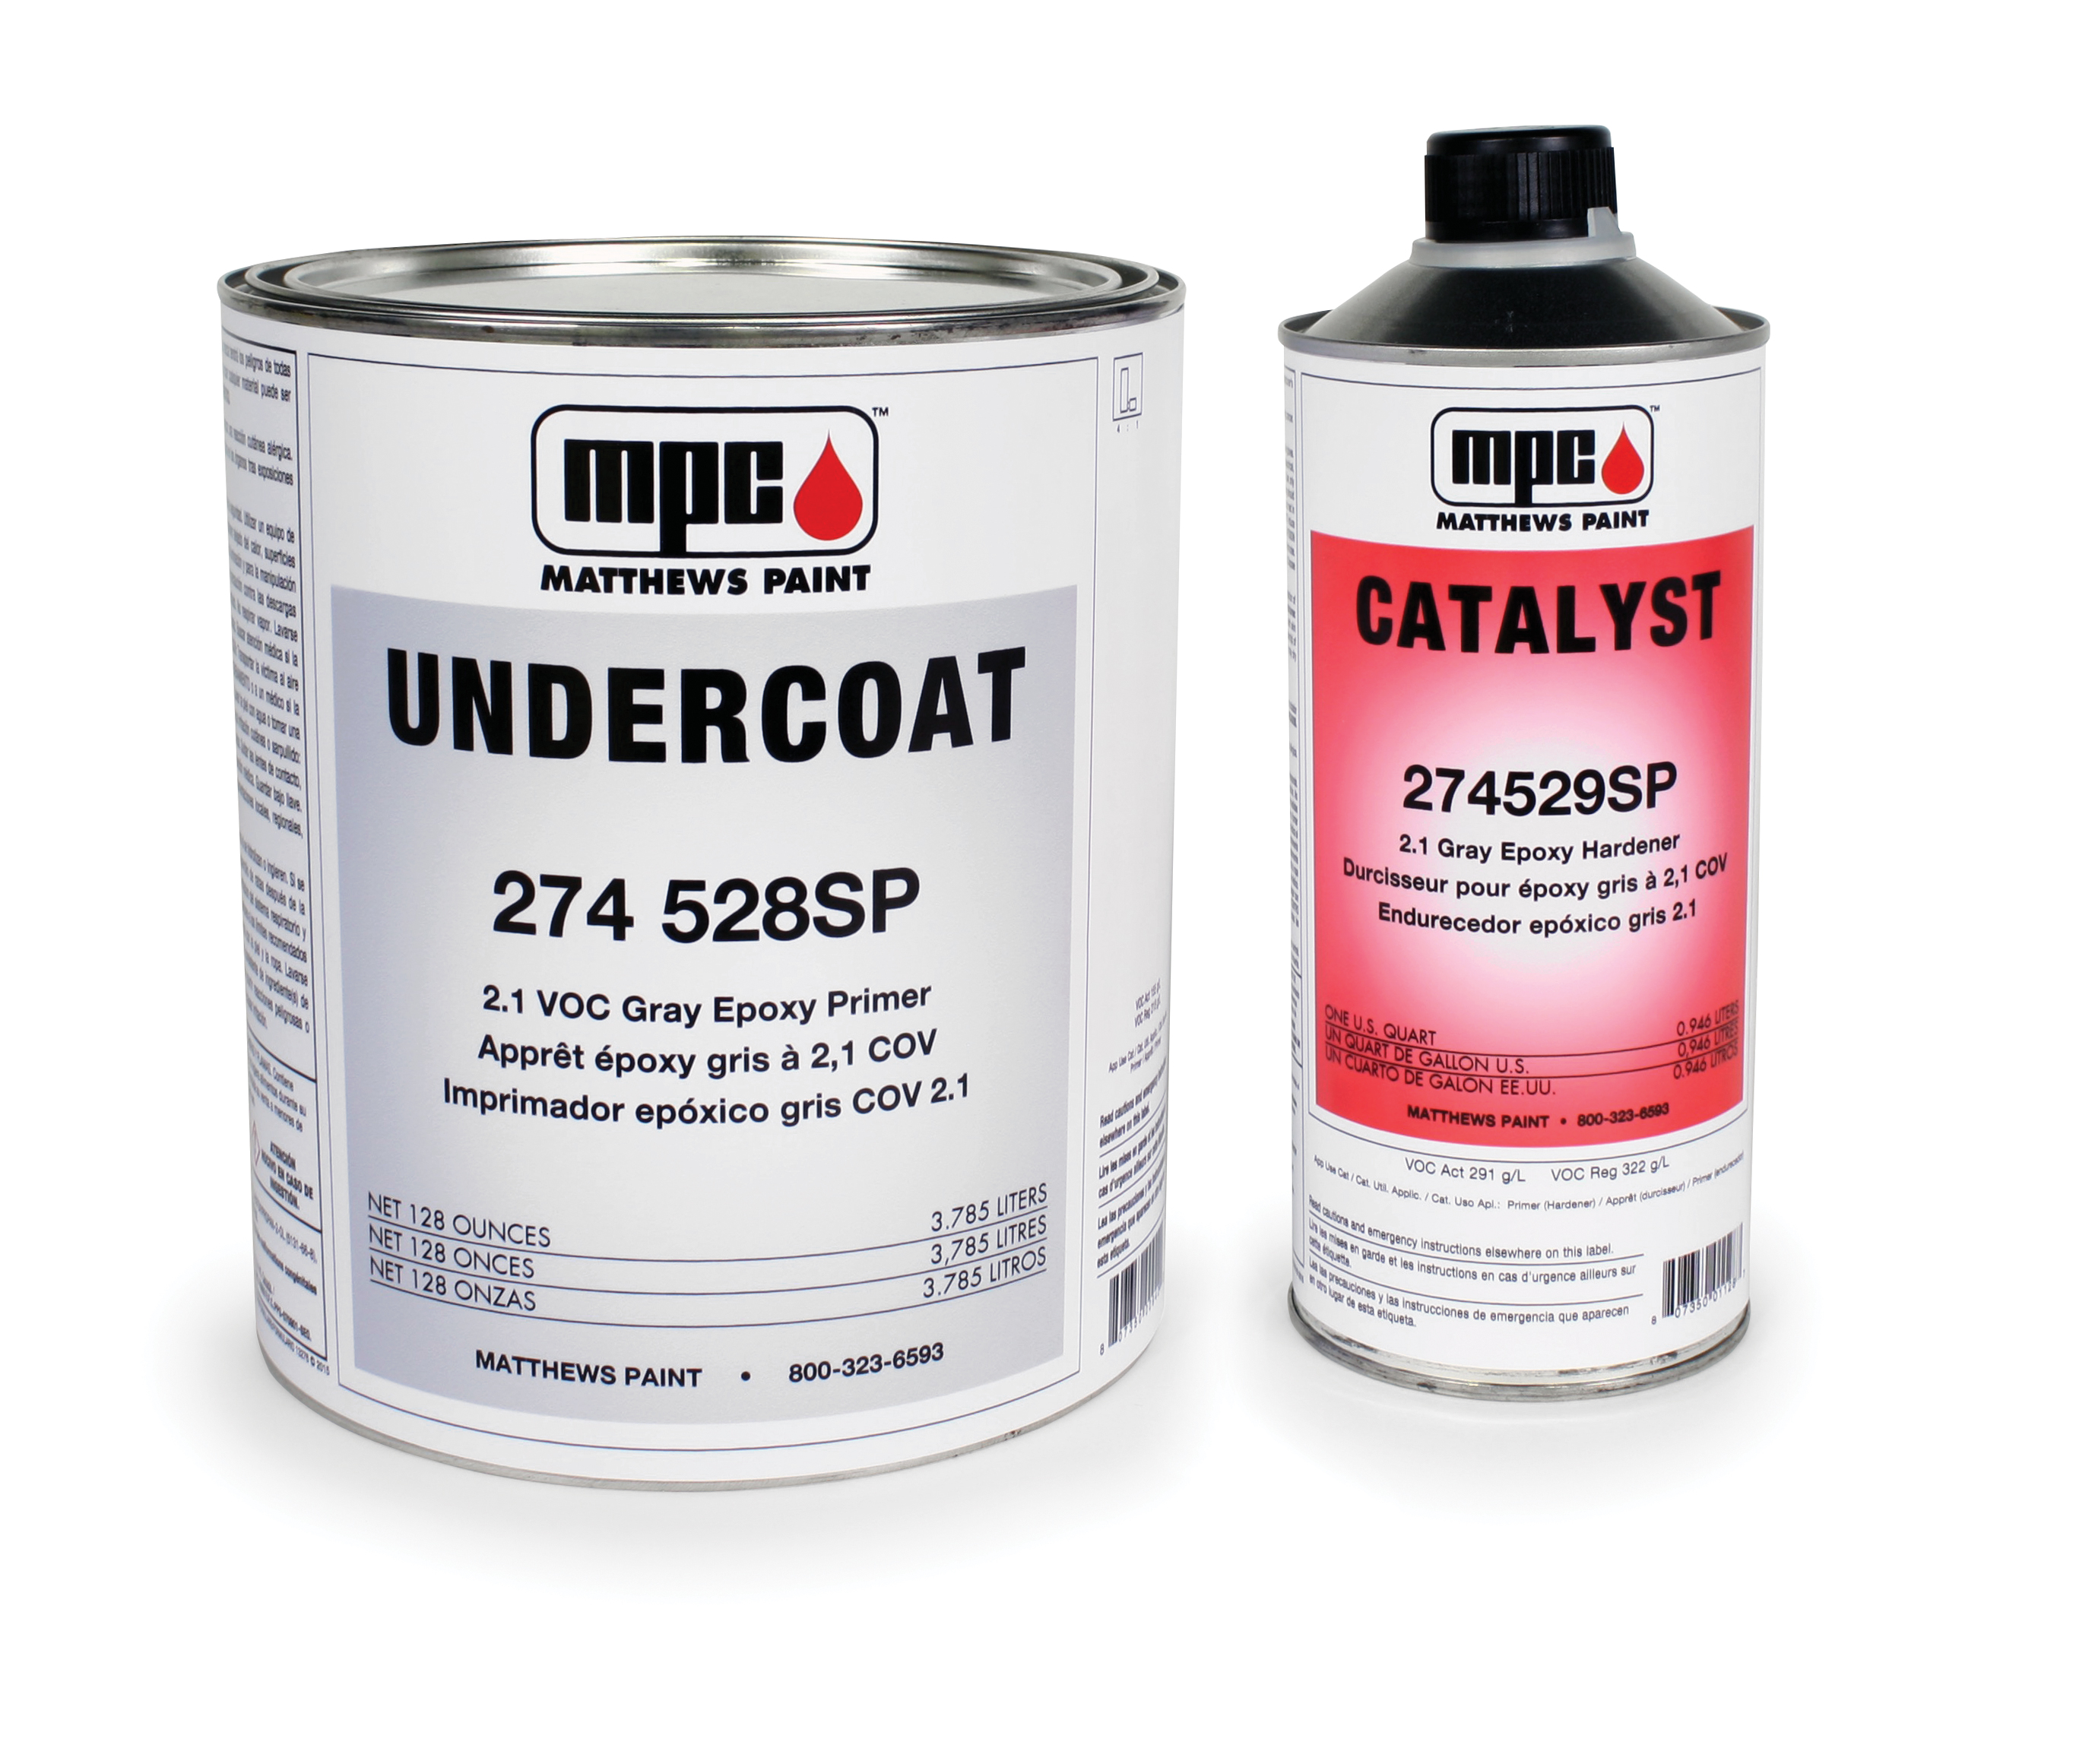 New Epoxy Primer Meets 2 1 Voc Regulations And Dries Quickly